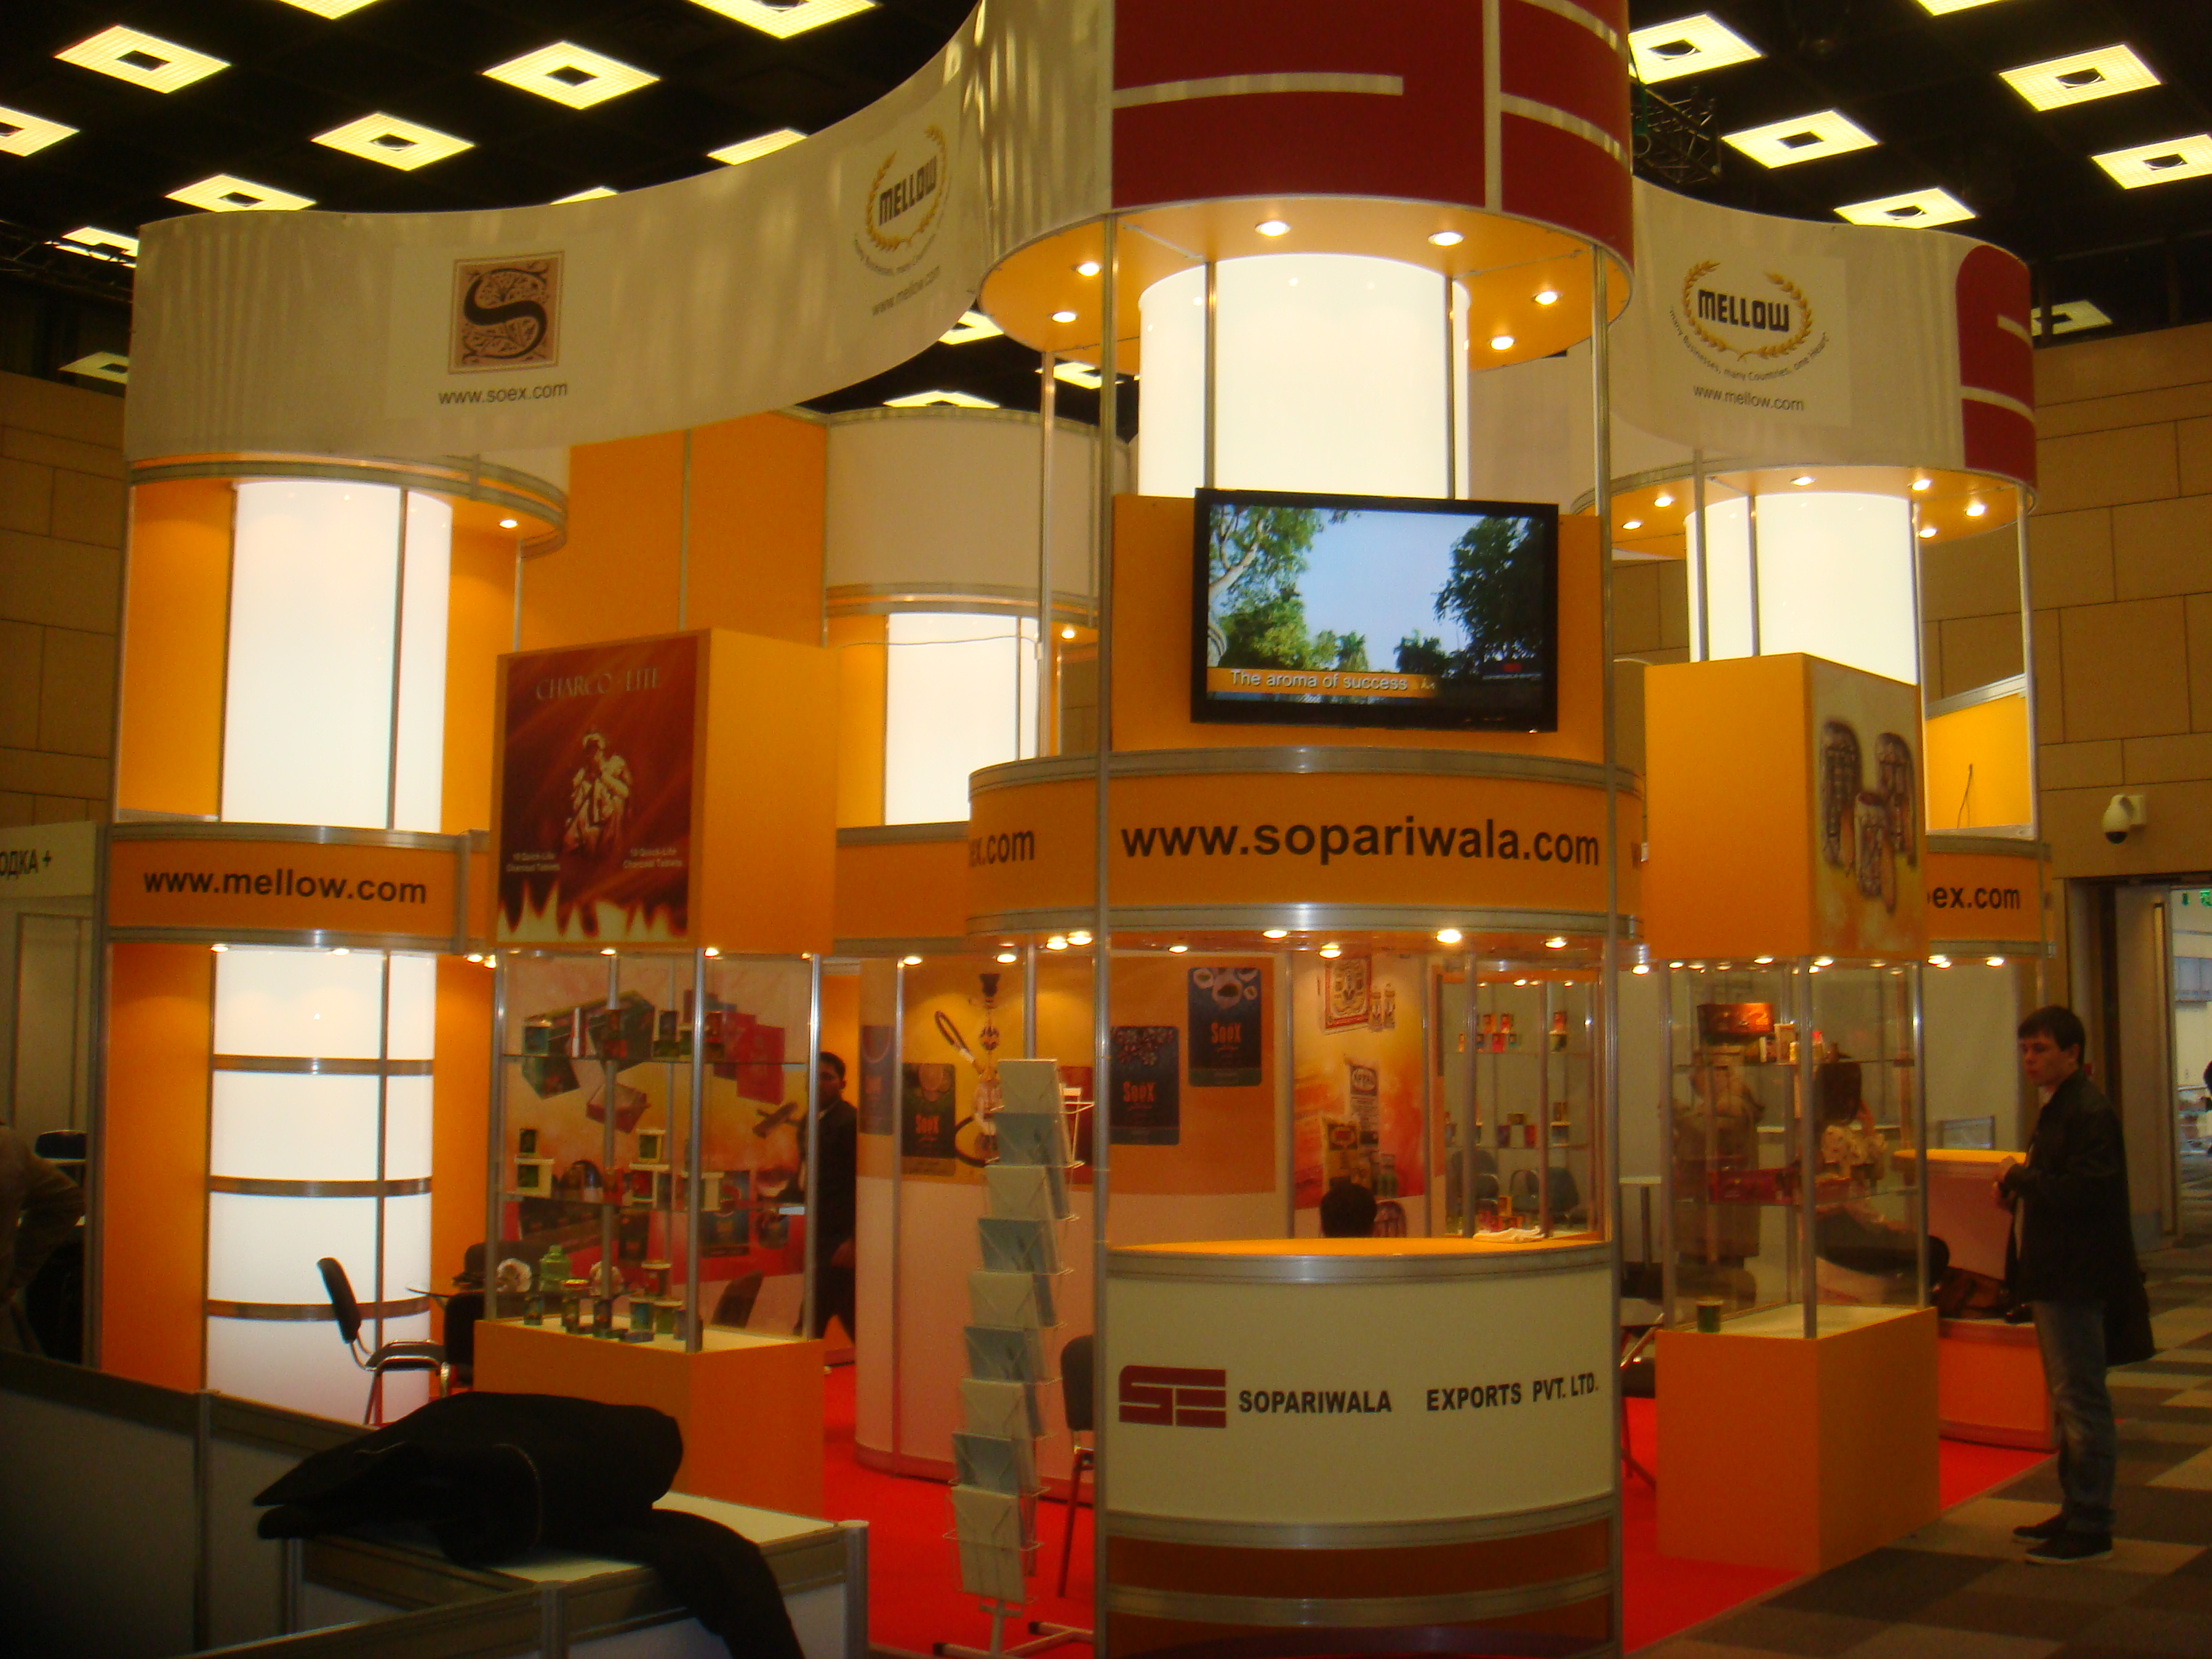 TABAK EXPO 2013 MOSCOW RUSSIA